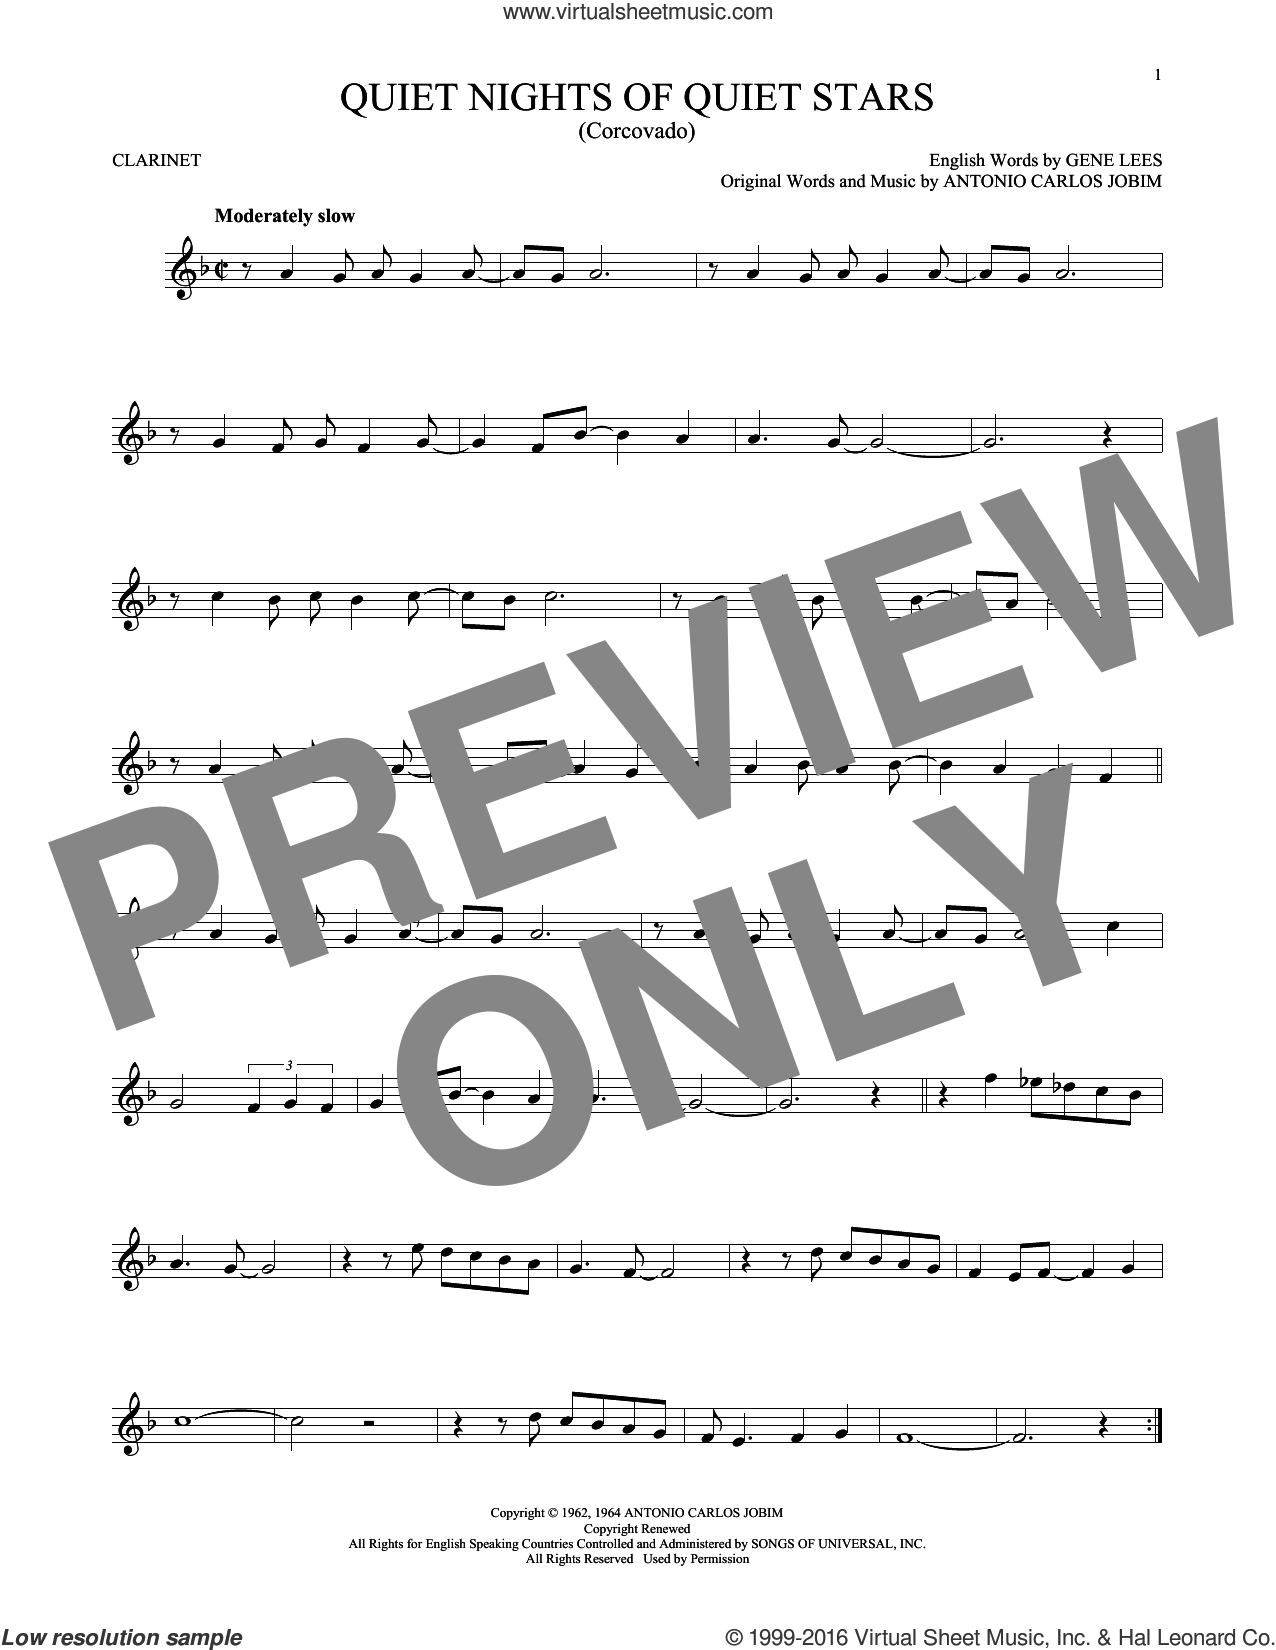 Quiet Nights Of Quiet Stars (Corcovado) sheet music for clarinet solo by Andy Williams, Antonio Carlos Jobim and Eugene John Lees, intermediate skill level